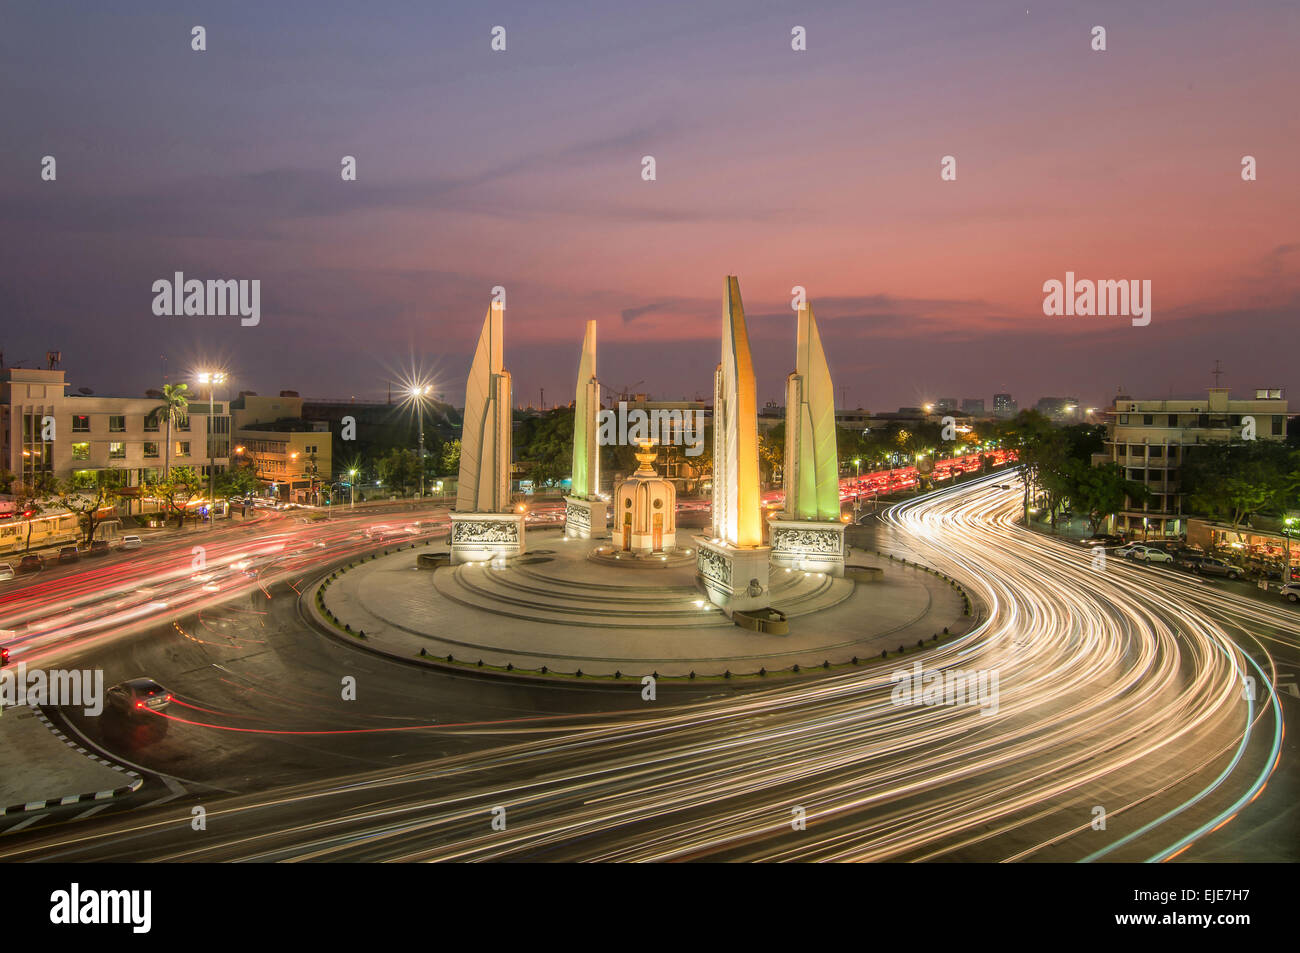 The Democracy Monument at twilight time at Bangkok,Thailand - Stock Image